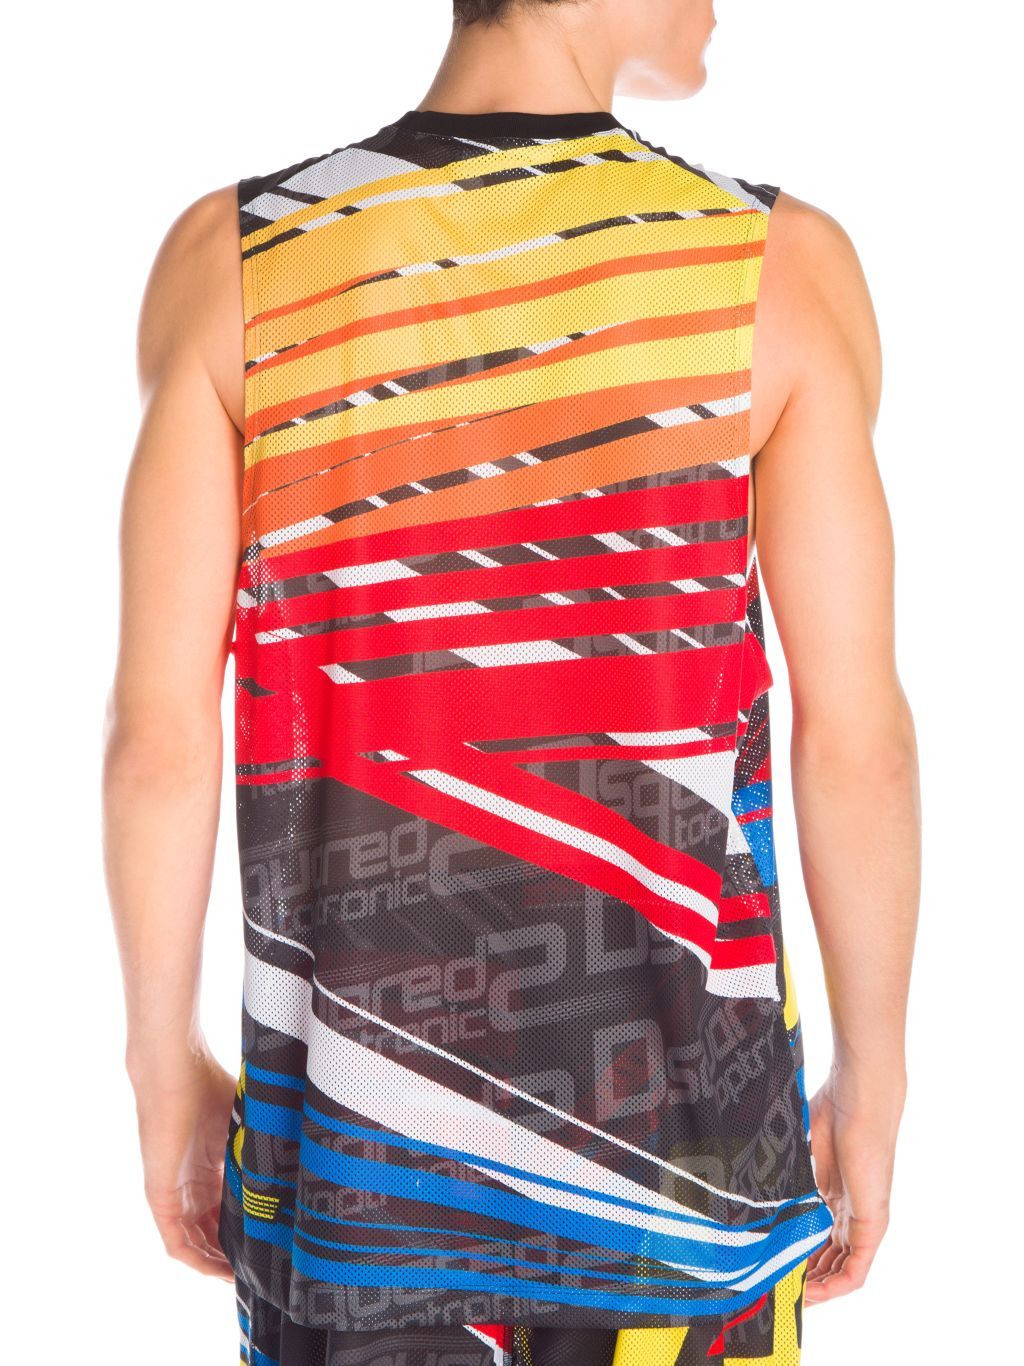 Dsquared2 Taptronic Perforated Muscle Tank Top